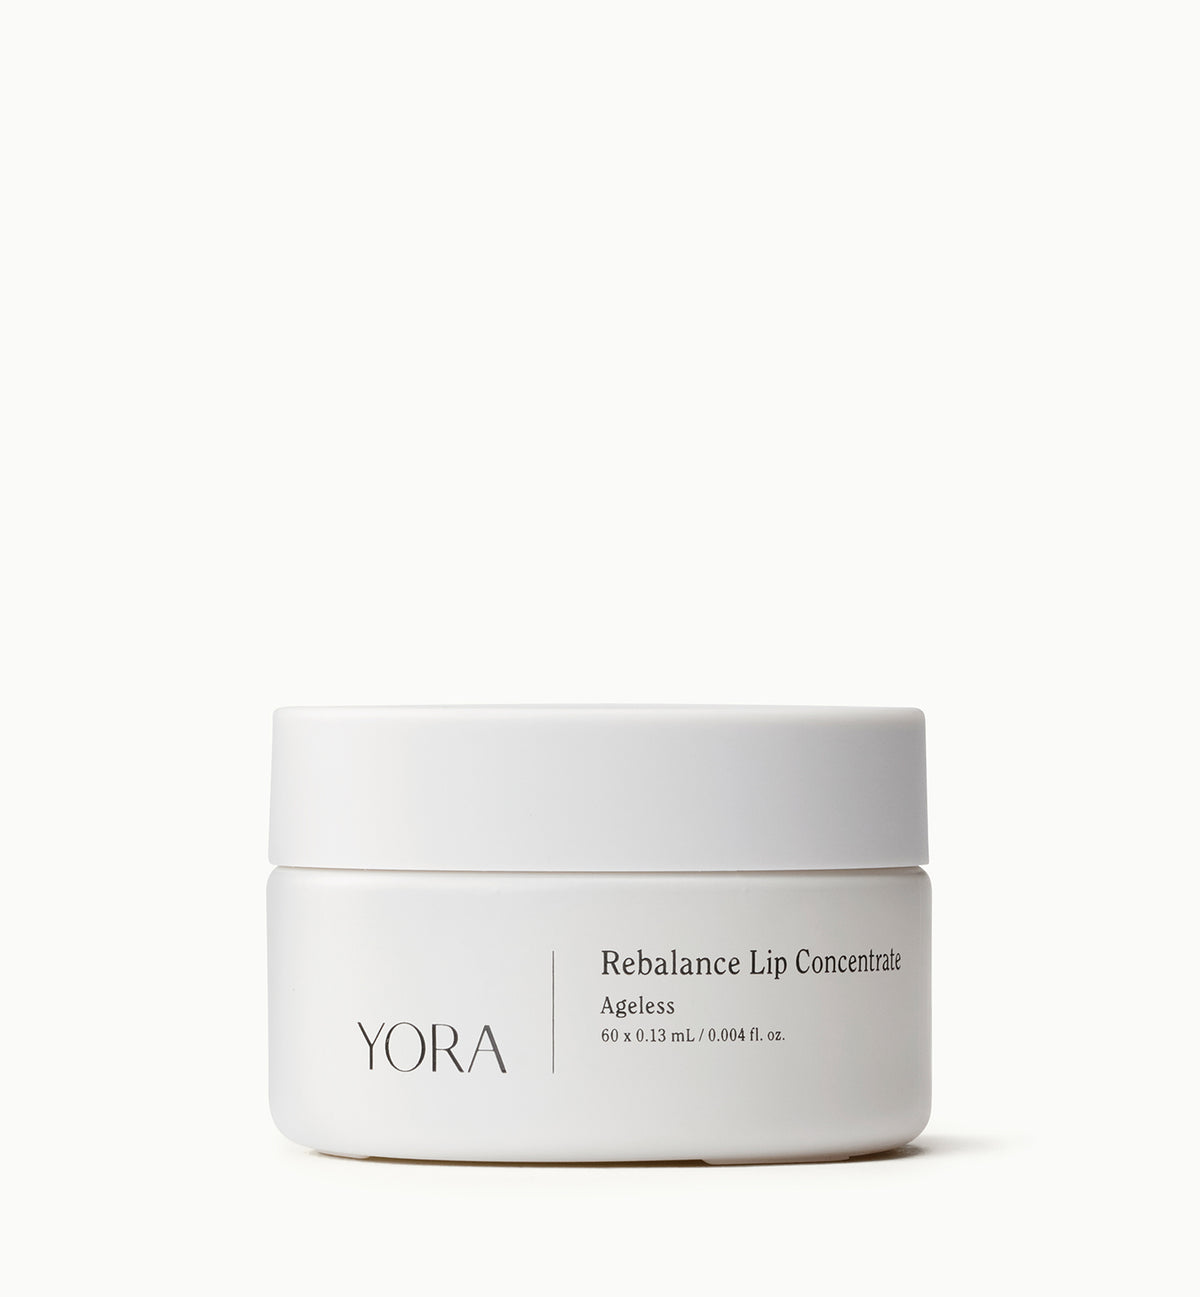 Rebalance Lip Concentrate